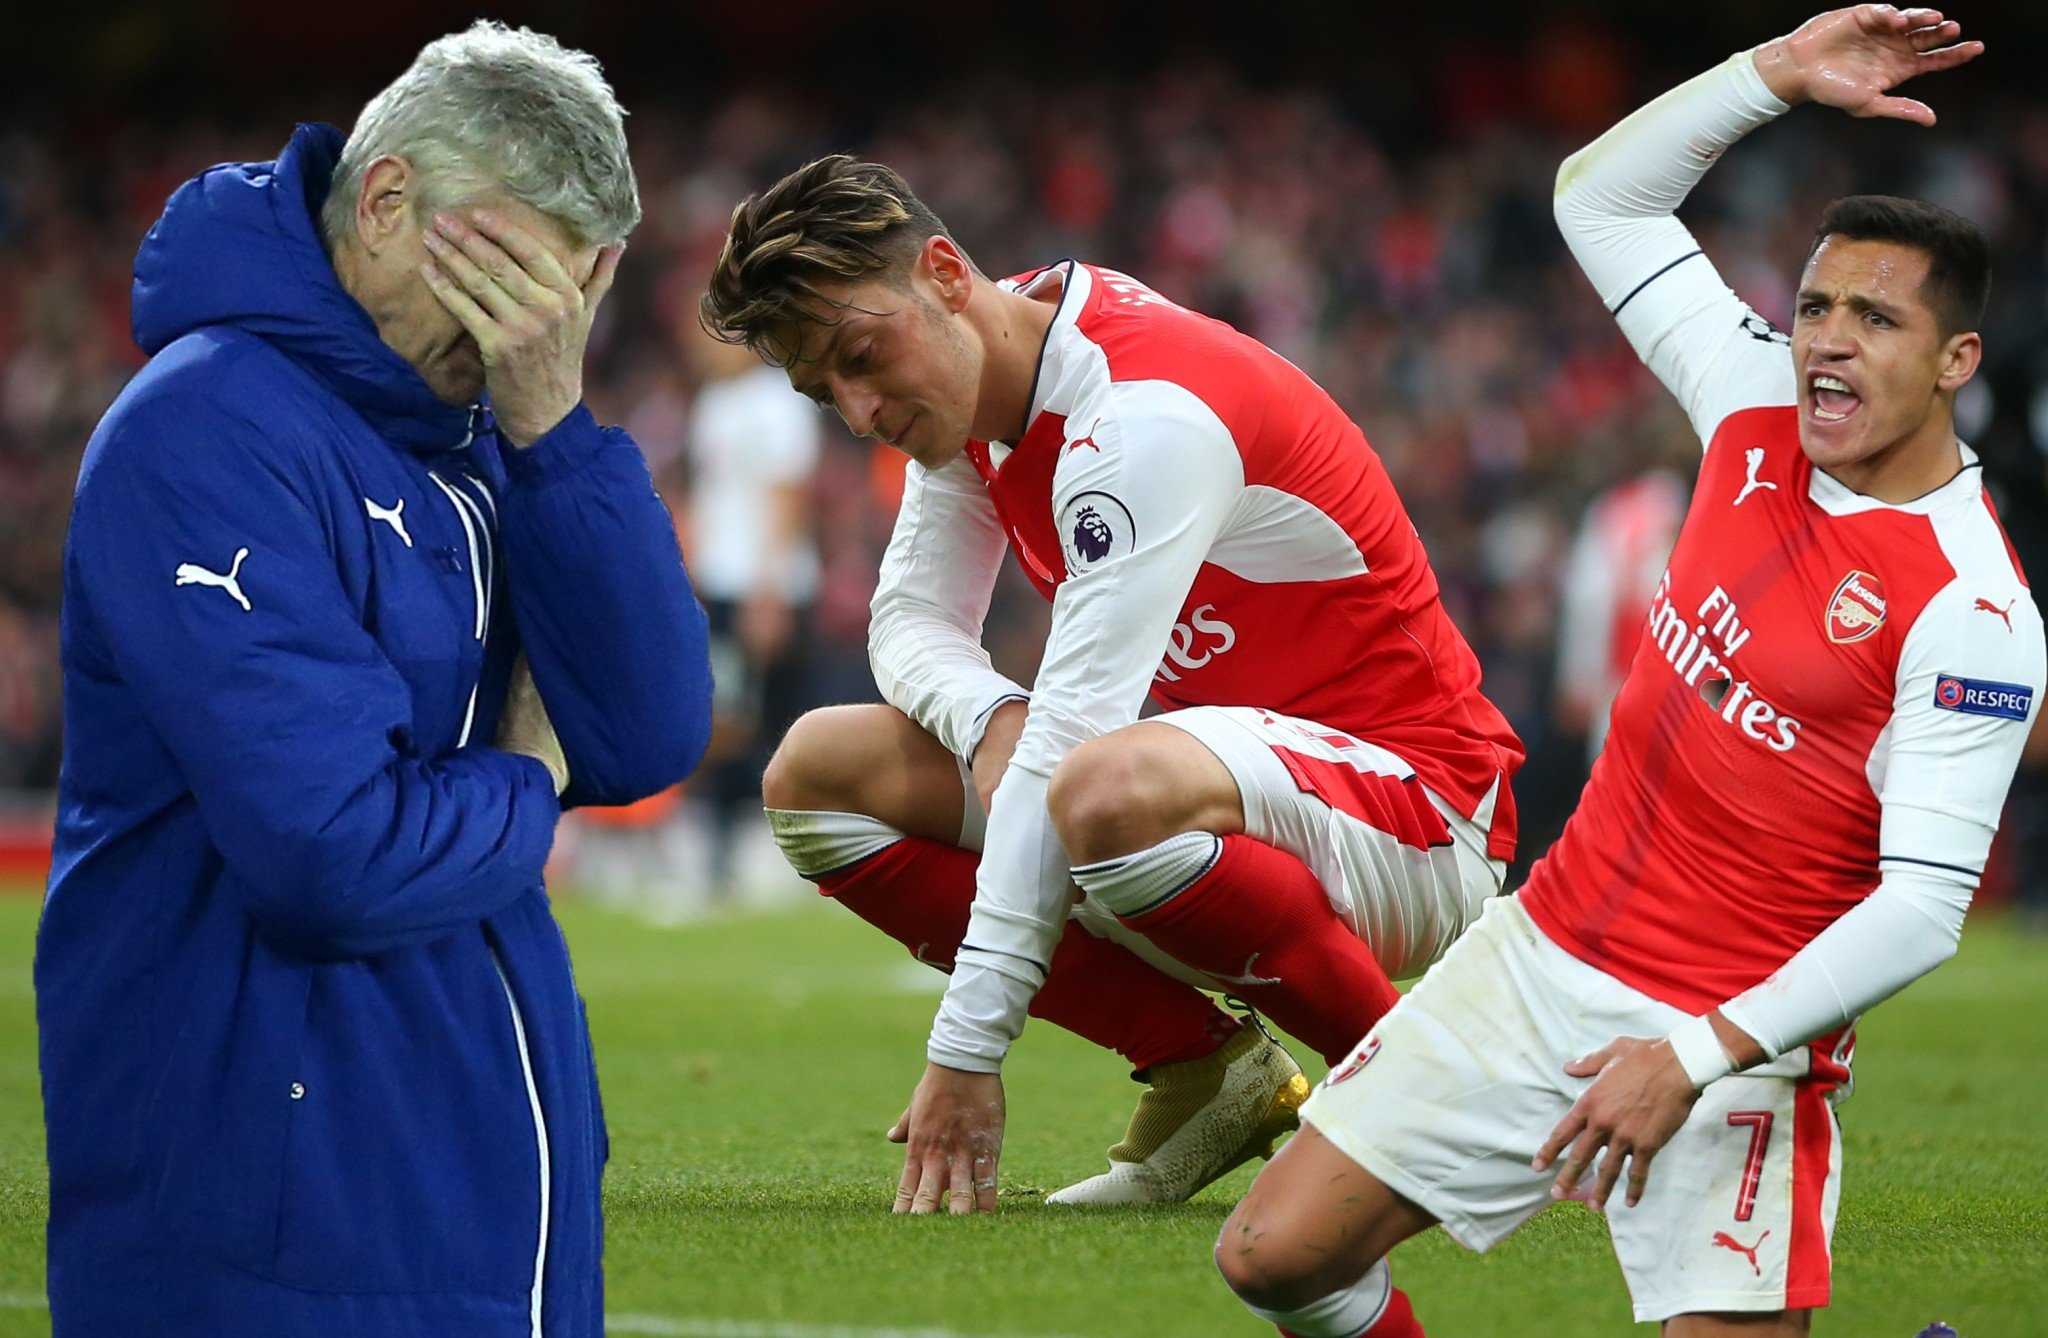 Arsene Wenger might pick the players but the likes of Sanchez and Ozil are just as much to blame for Arsenal's failings